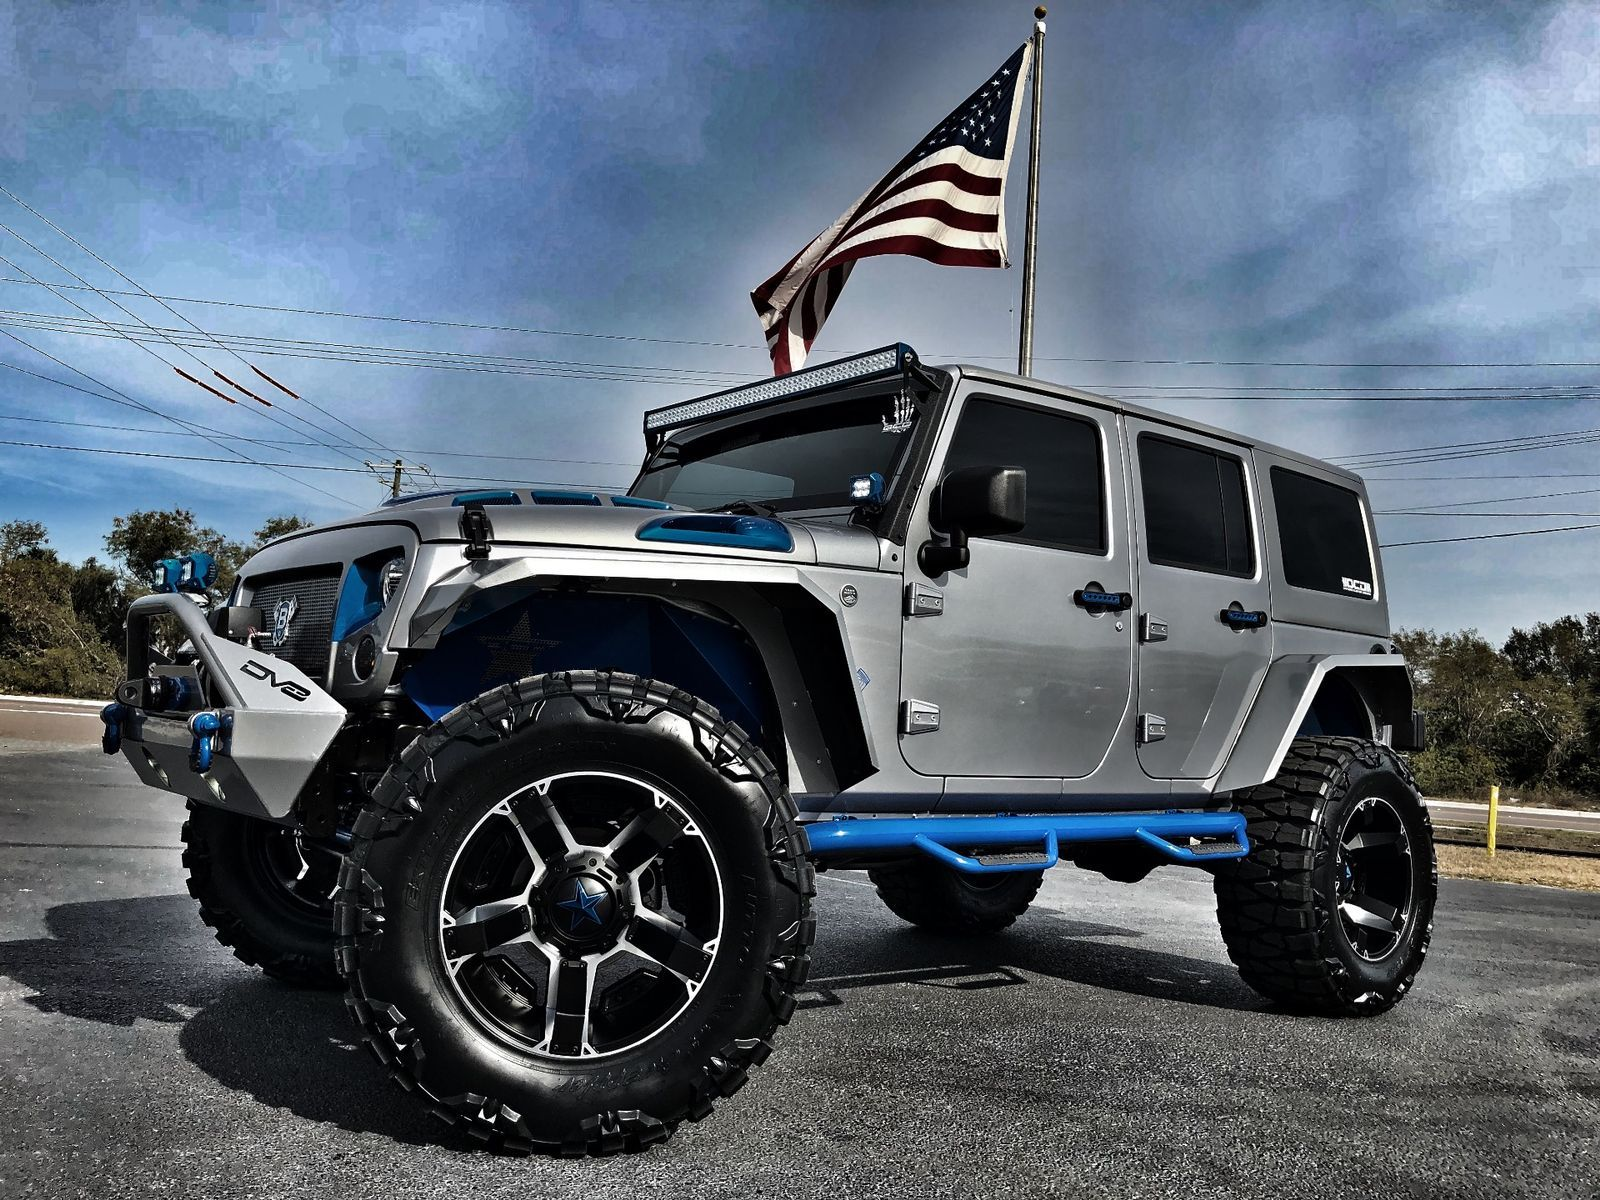 2018 Jeep Wrangler Jk Unlimited Rubicon Jk Custom Lifted 38s Leather Hardtop Florida Bayshore Automotive In Florida Jeep Wrangler Jeep Wrangler Jk Jeep